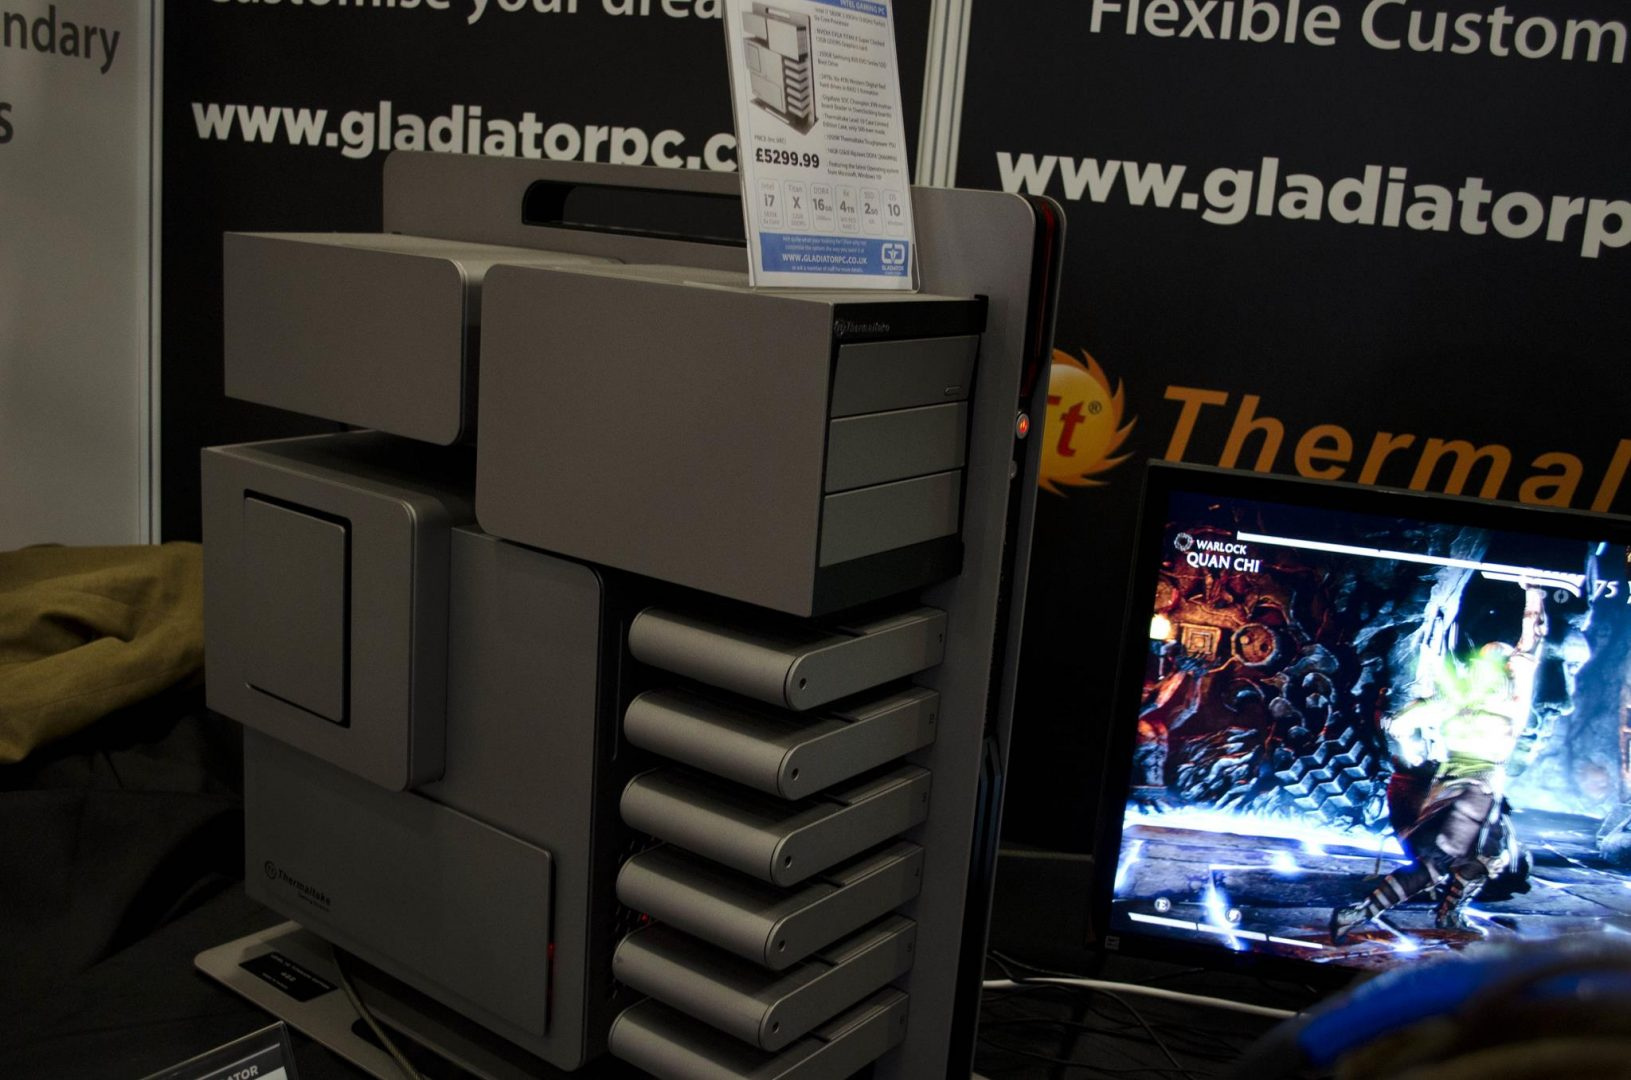 Aria and Gladiator PC at Multiplay Insomnia Gaming Festival I55_6